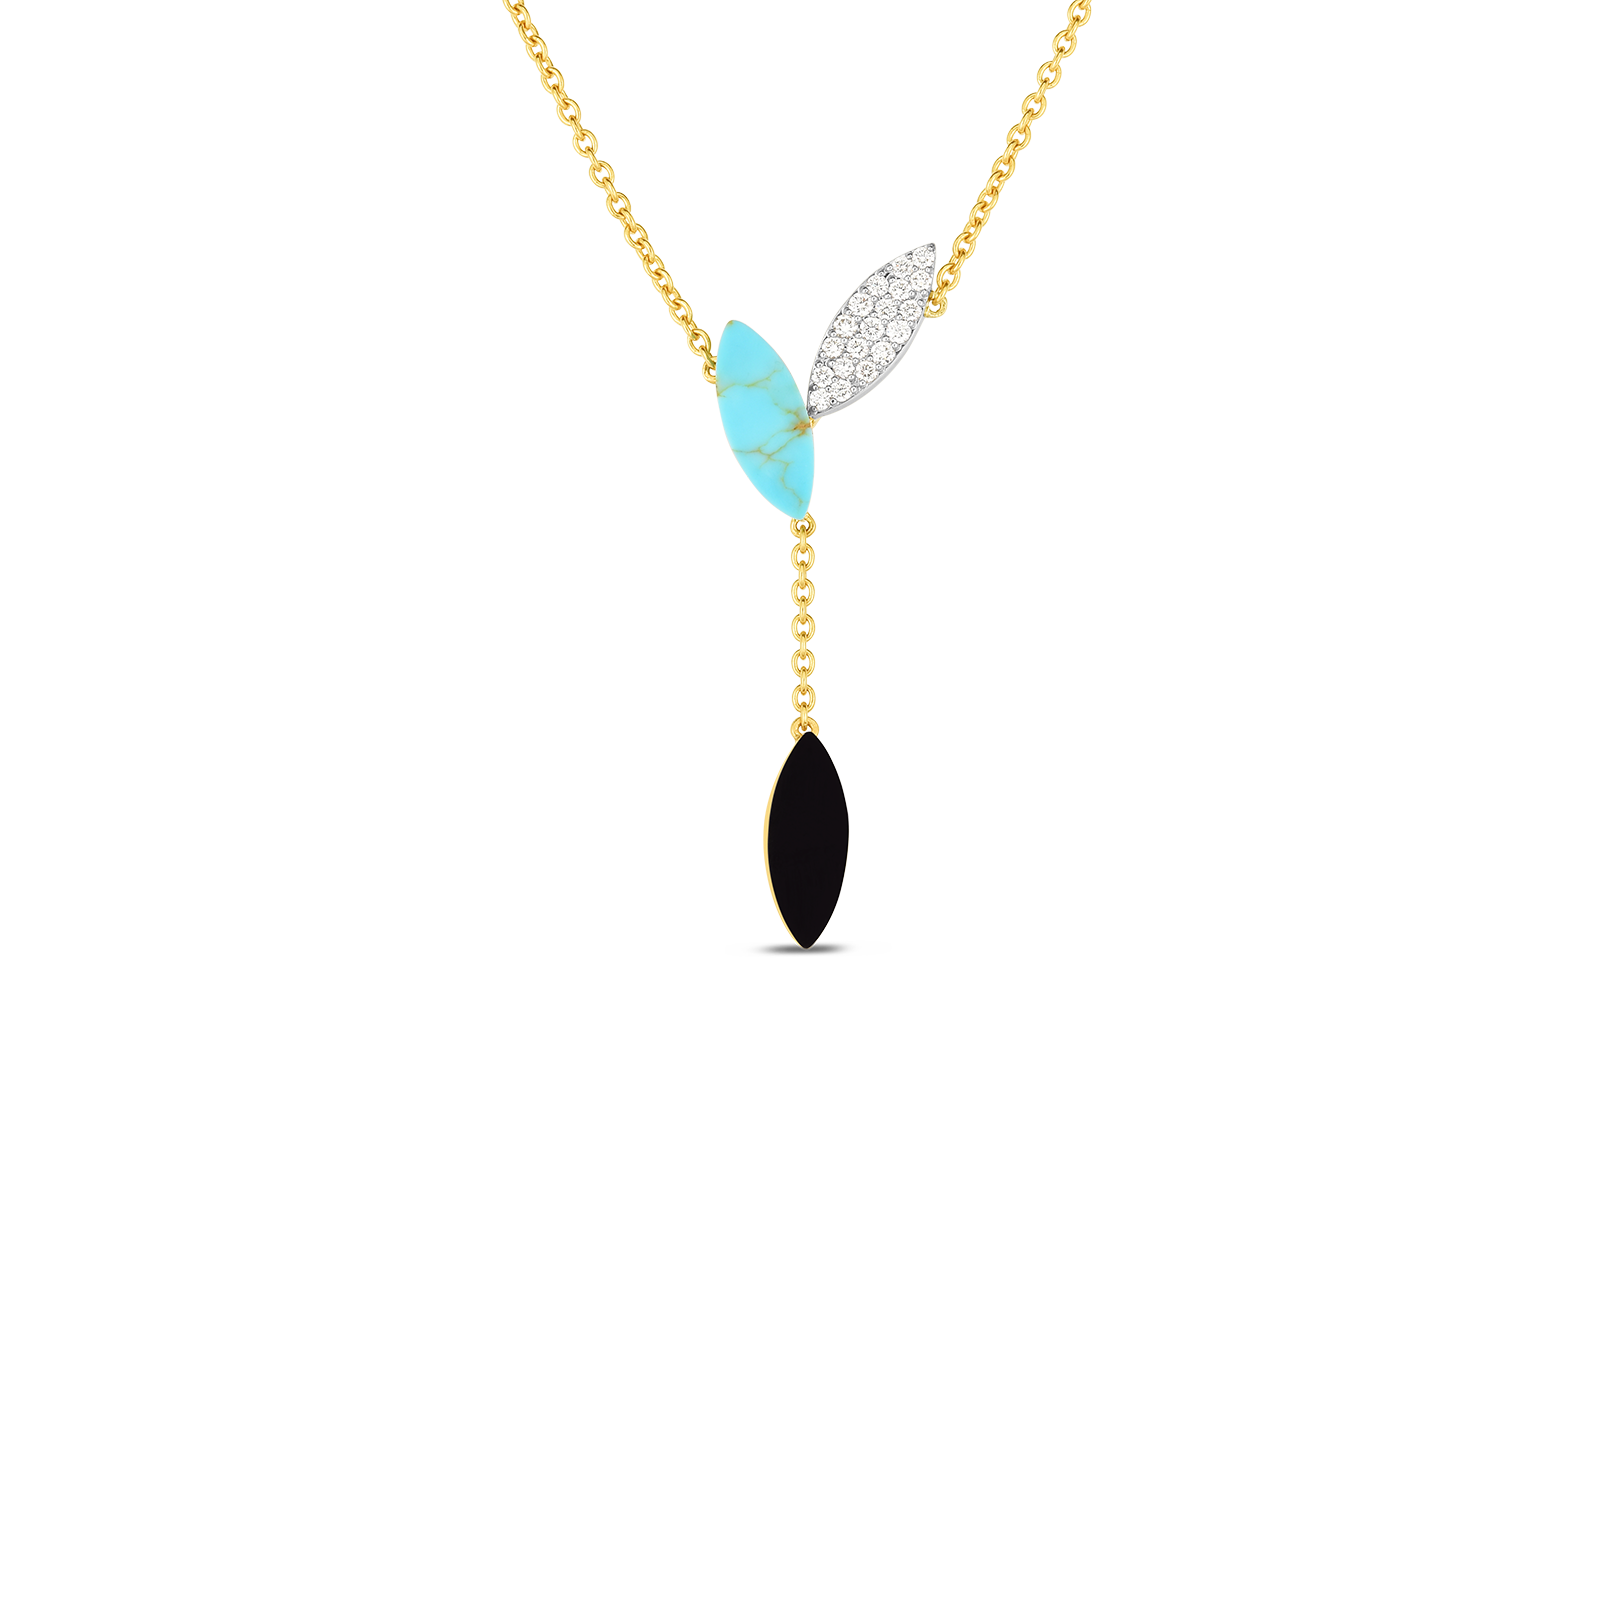 18kt Gold Petal Pendant With Diamonds, Black Jade And Turquoise